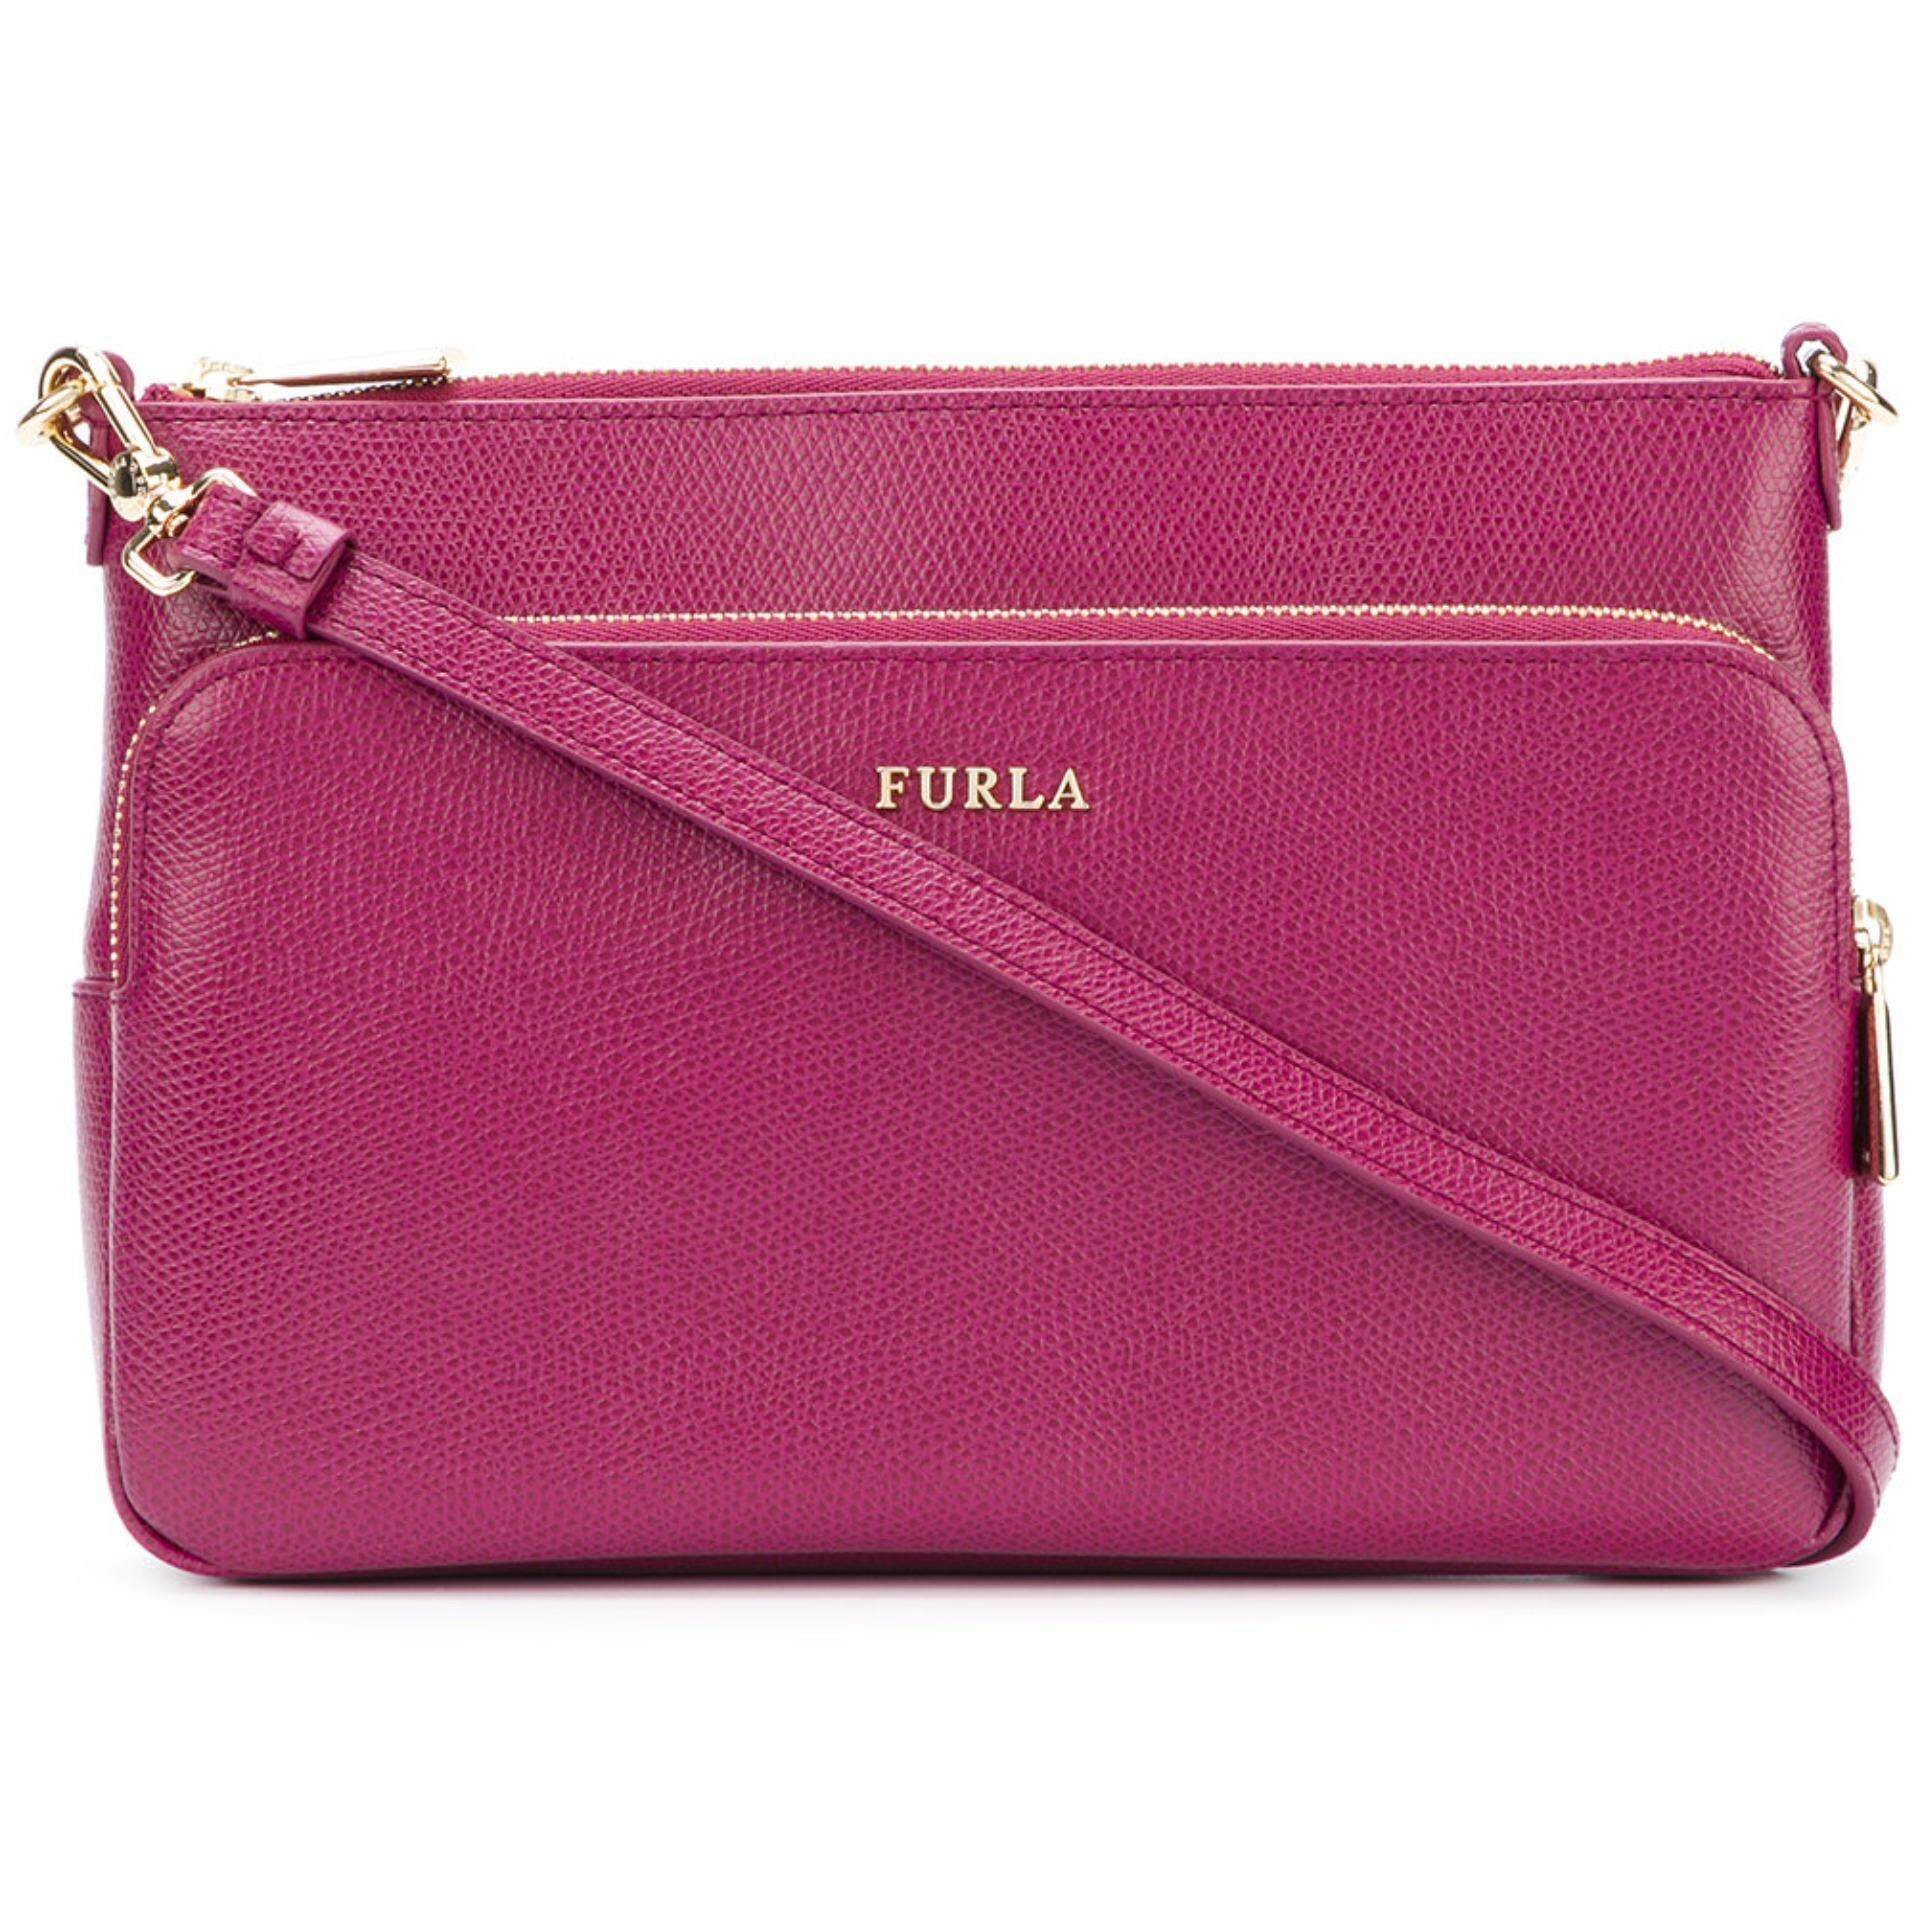 Furla Women Bags Price In Malaysia Best Lazada Metropolis Mini Crossbody Authentic Royal Xl